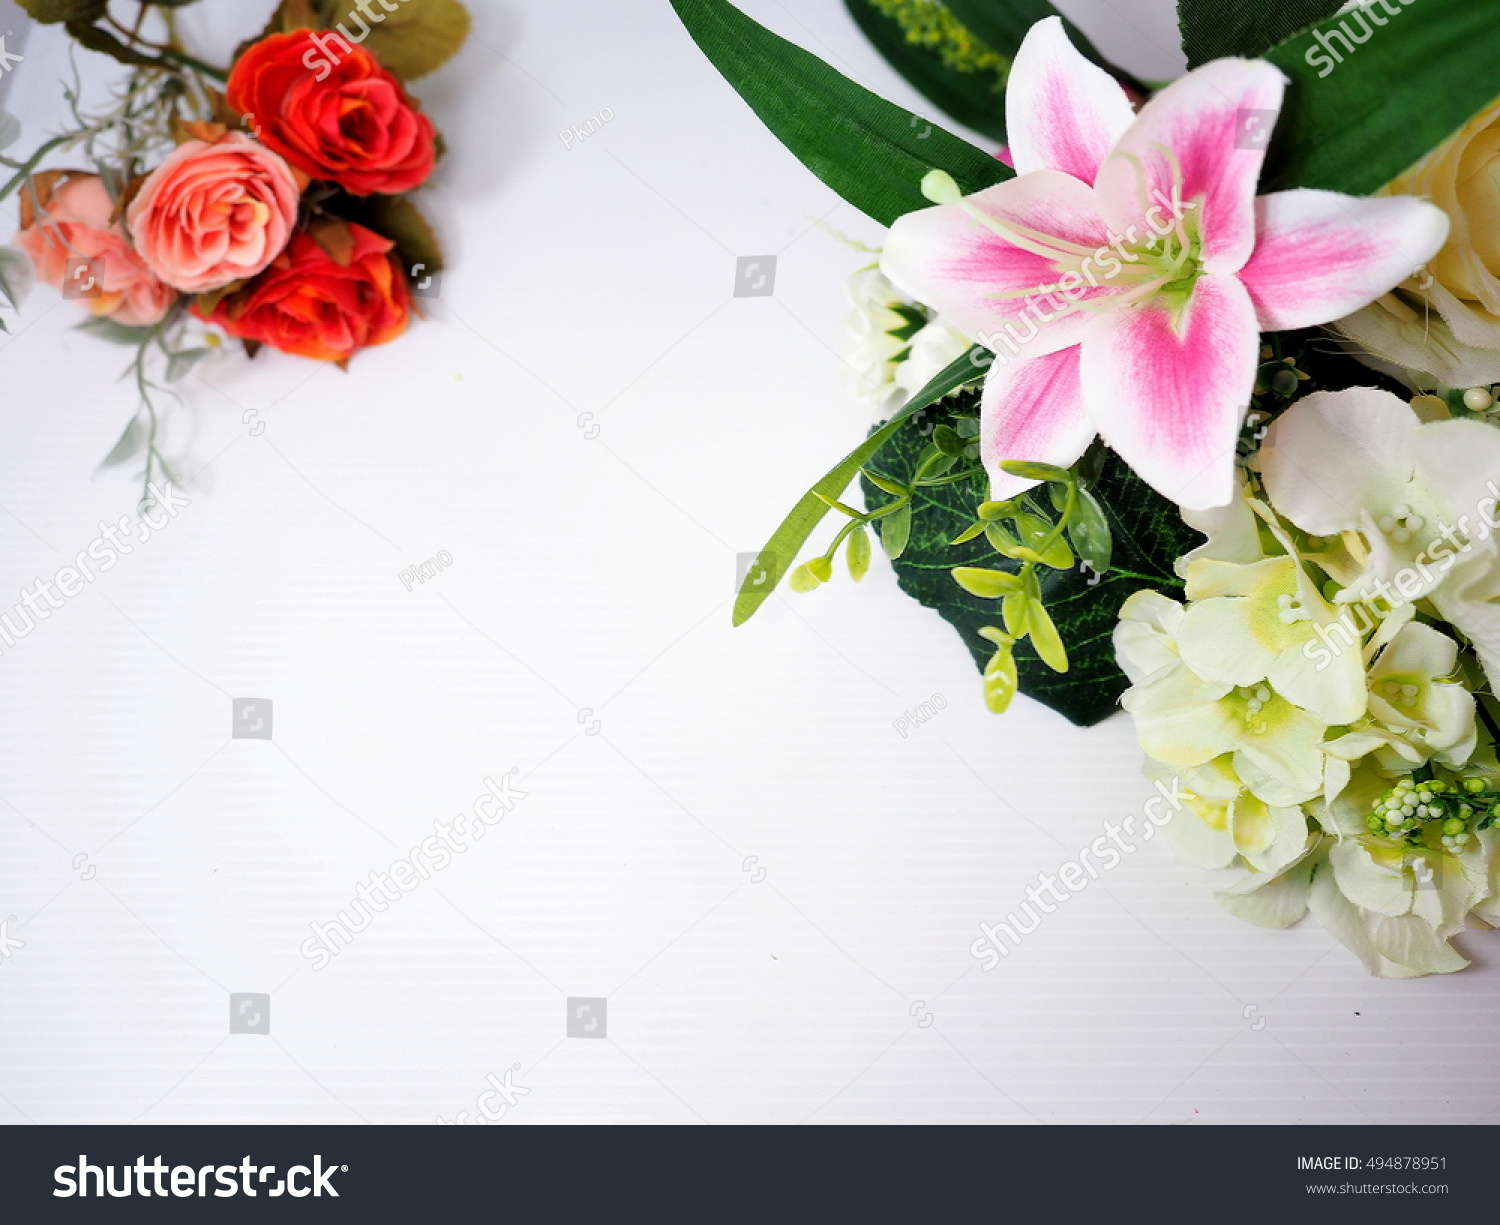 Most beautiful flower frame stock photo royalty free 494878951 most beautiful flower frame izmirmasajfo